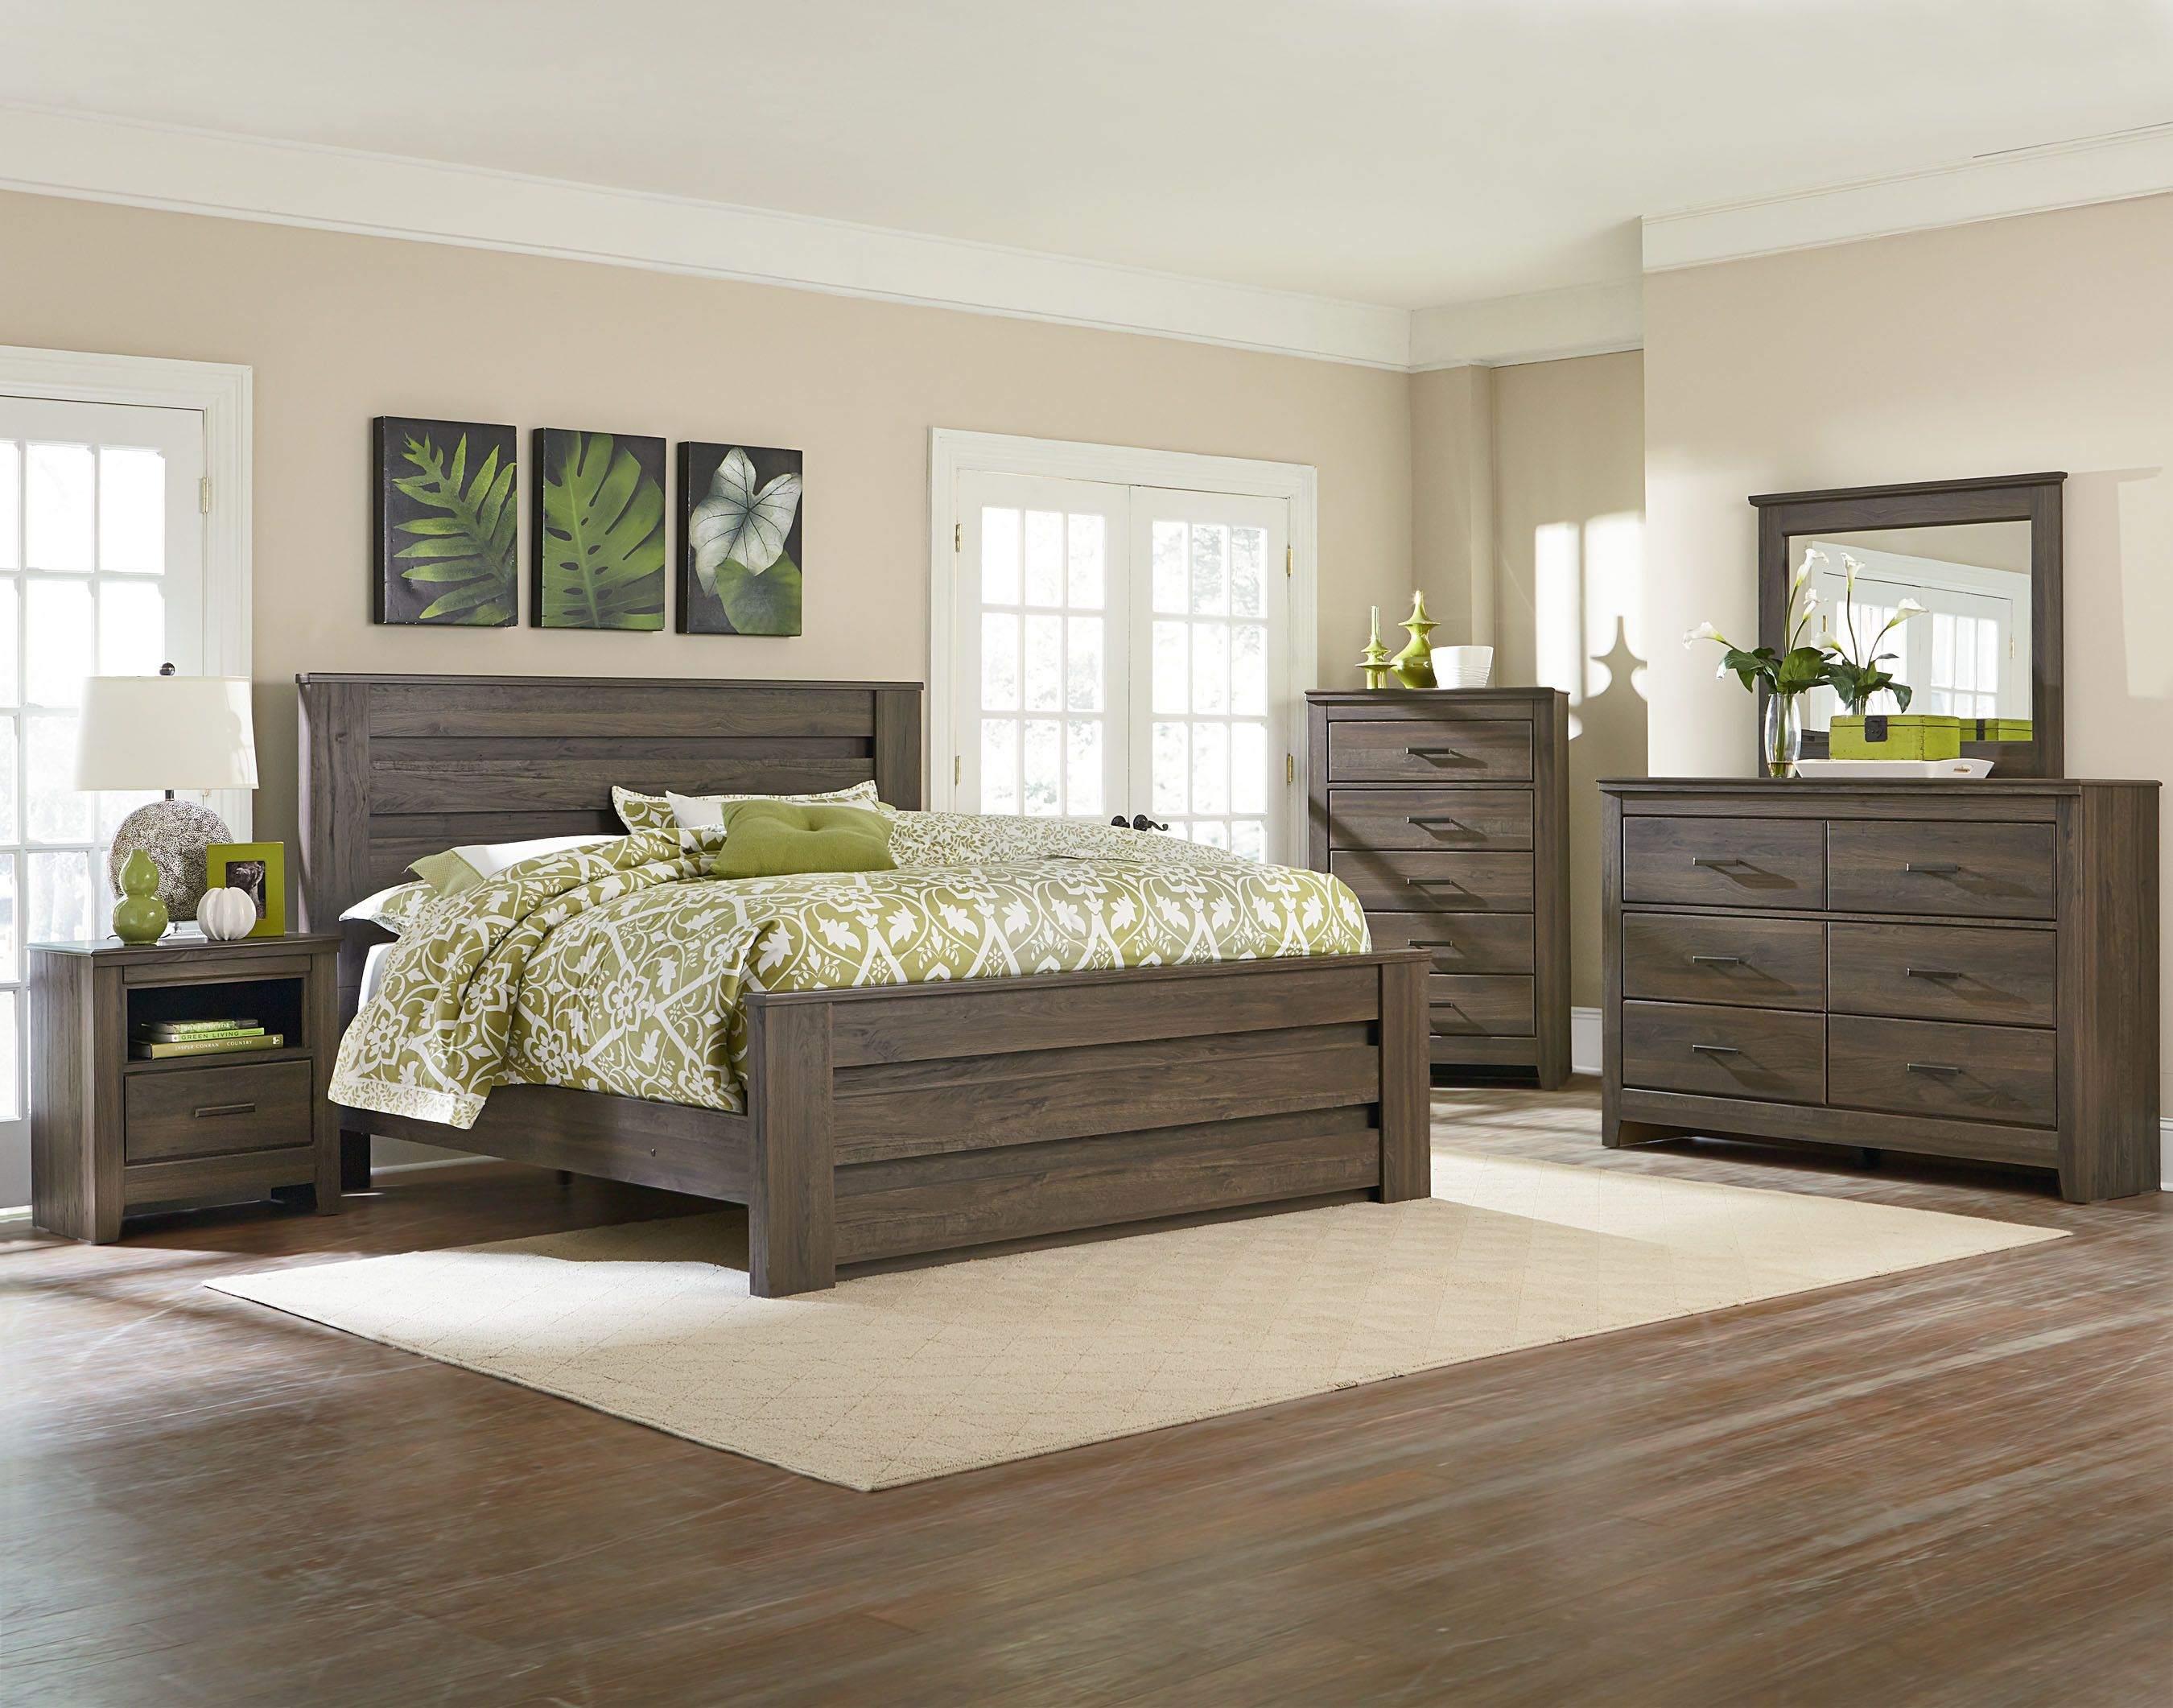 Best Dark Brown Weathered Oak Style Bedroom Set American Freight King Bedroom Sets Bedroom Sets 400 x 300